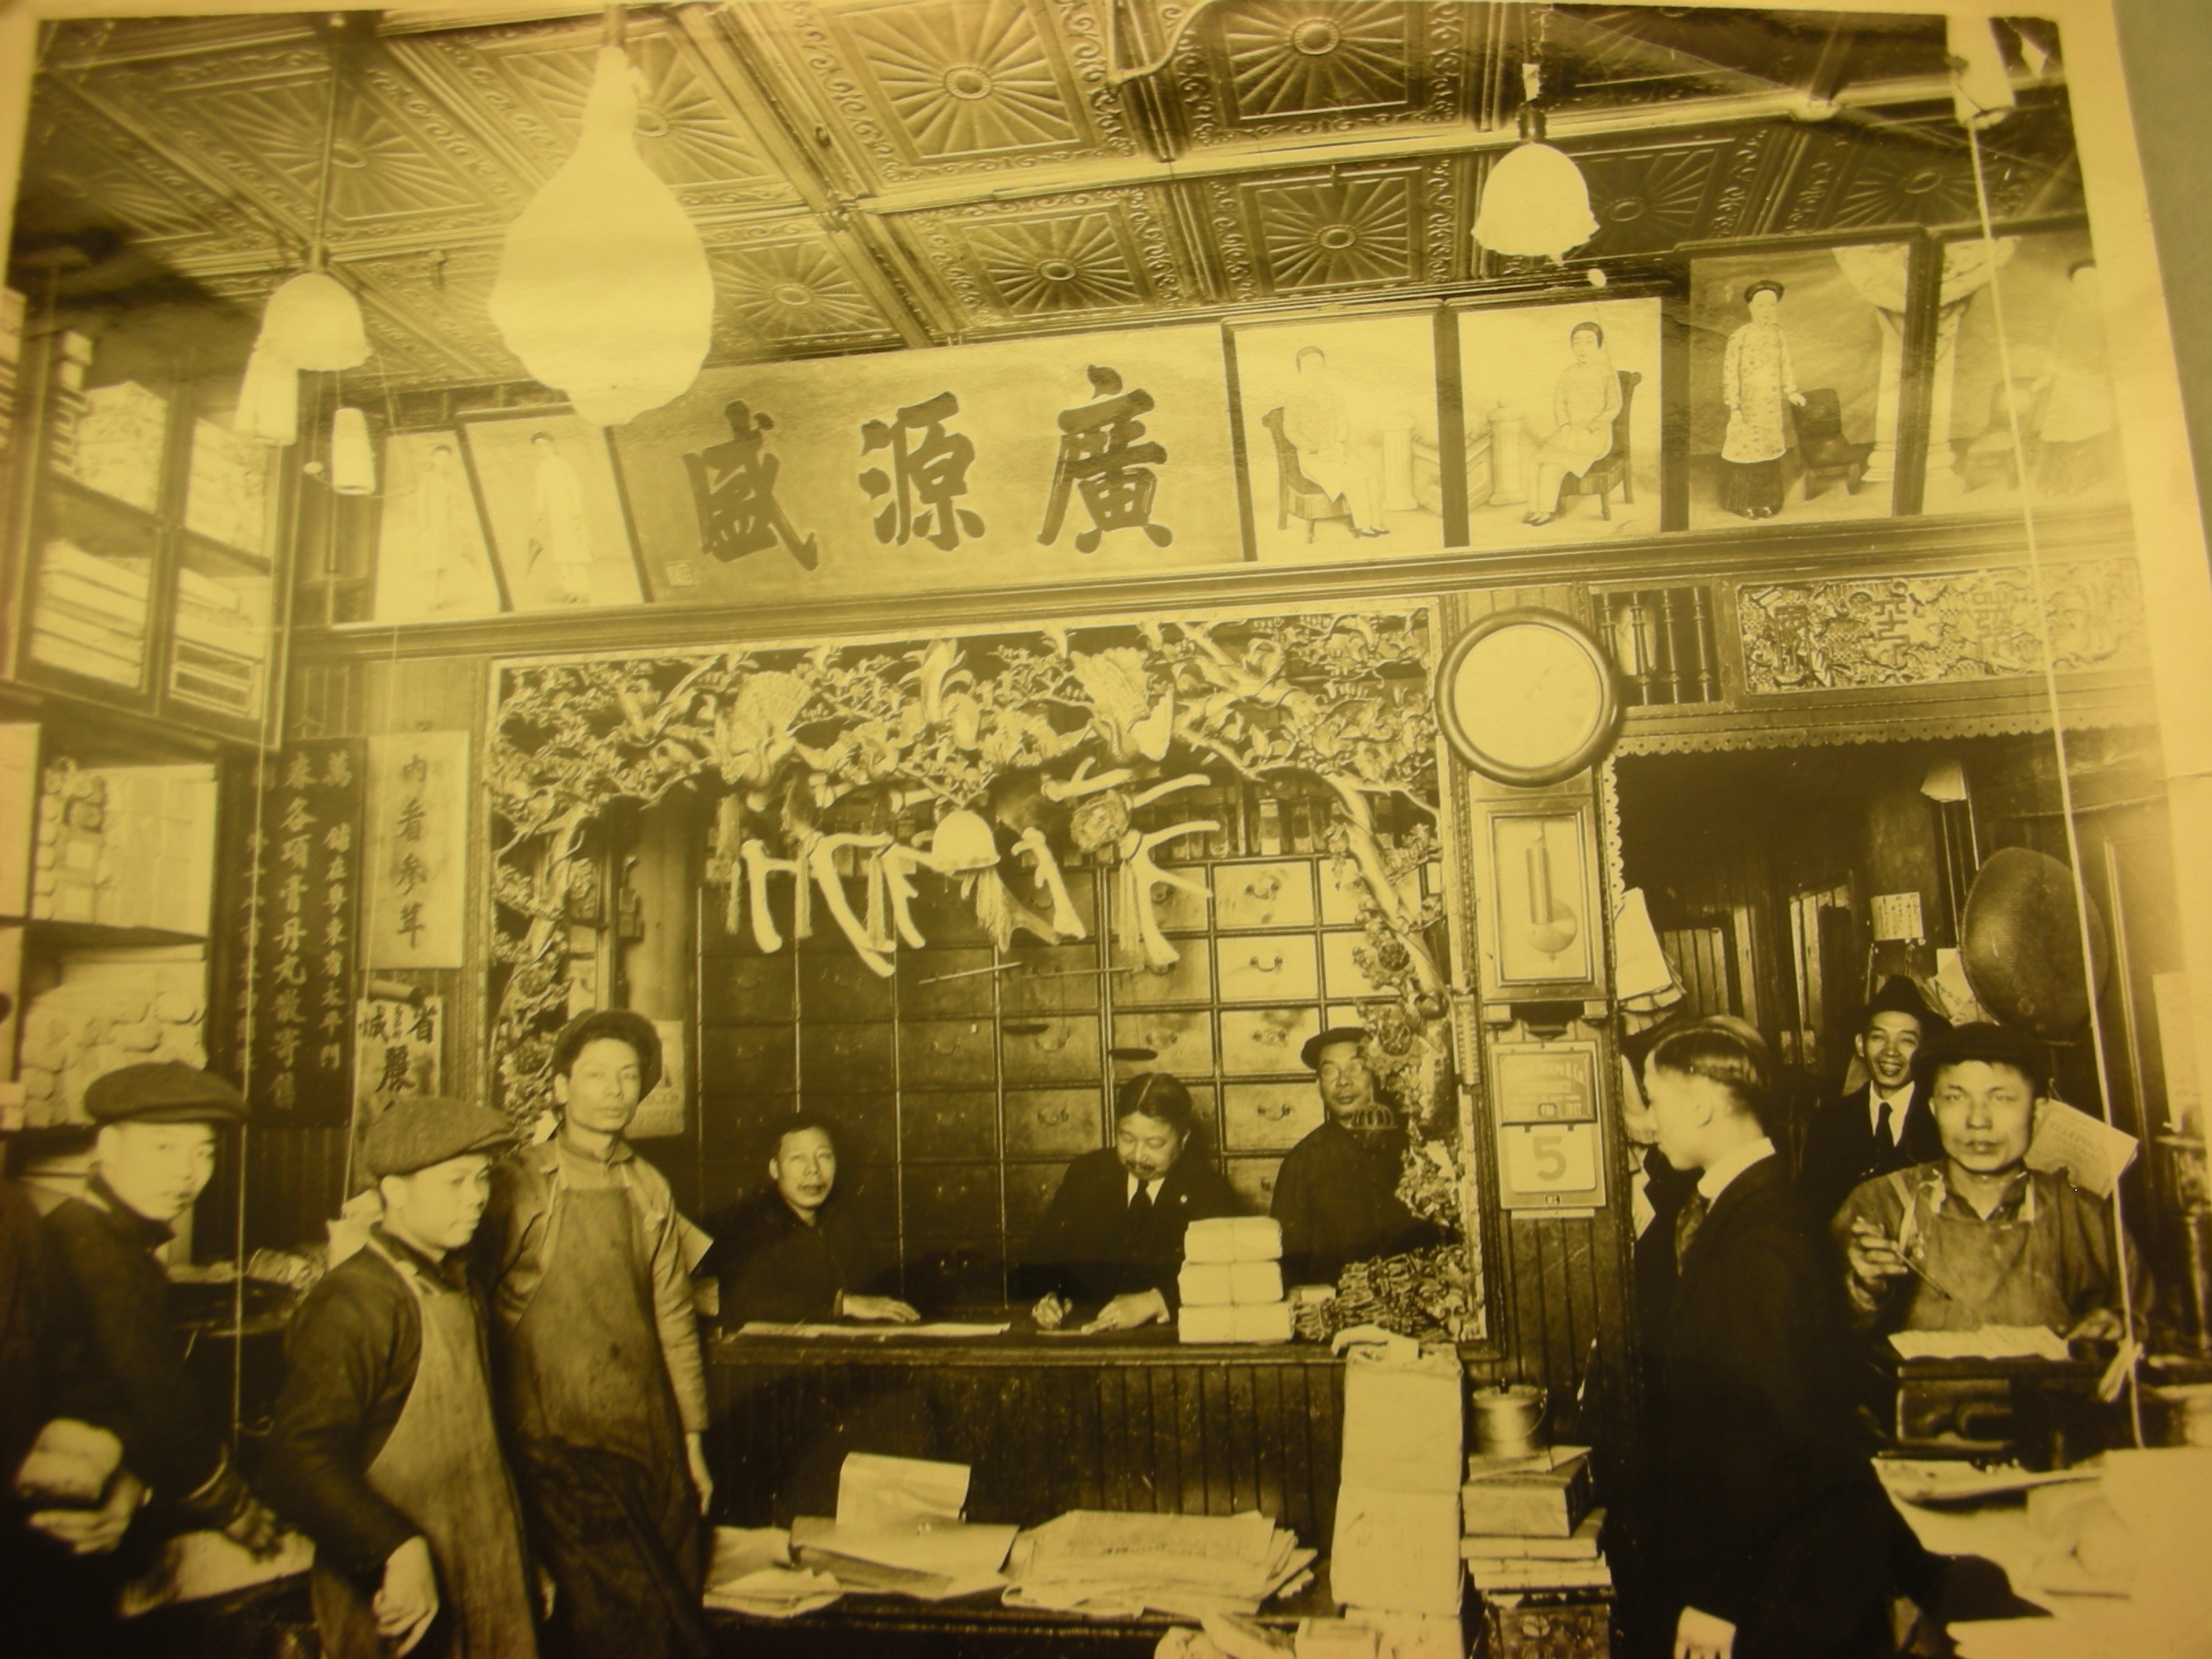 Quong Yuen Shing & Co. store, c. 1917